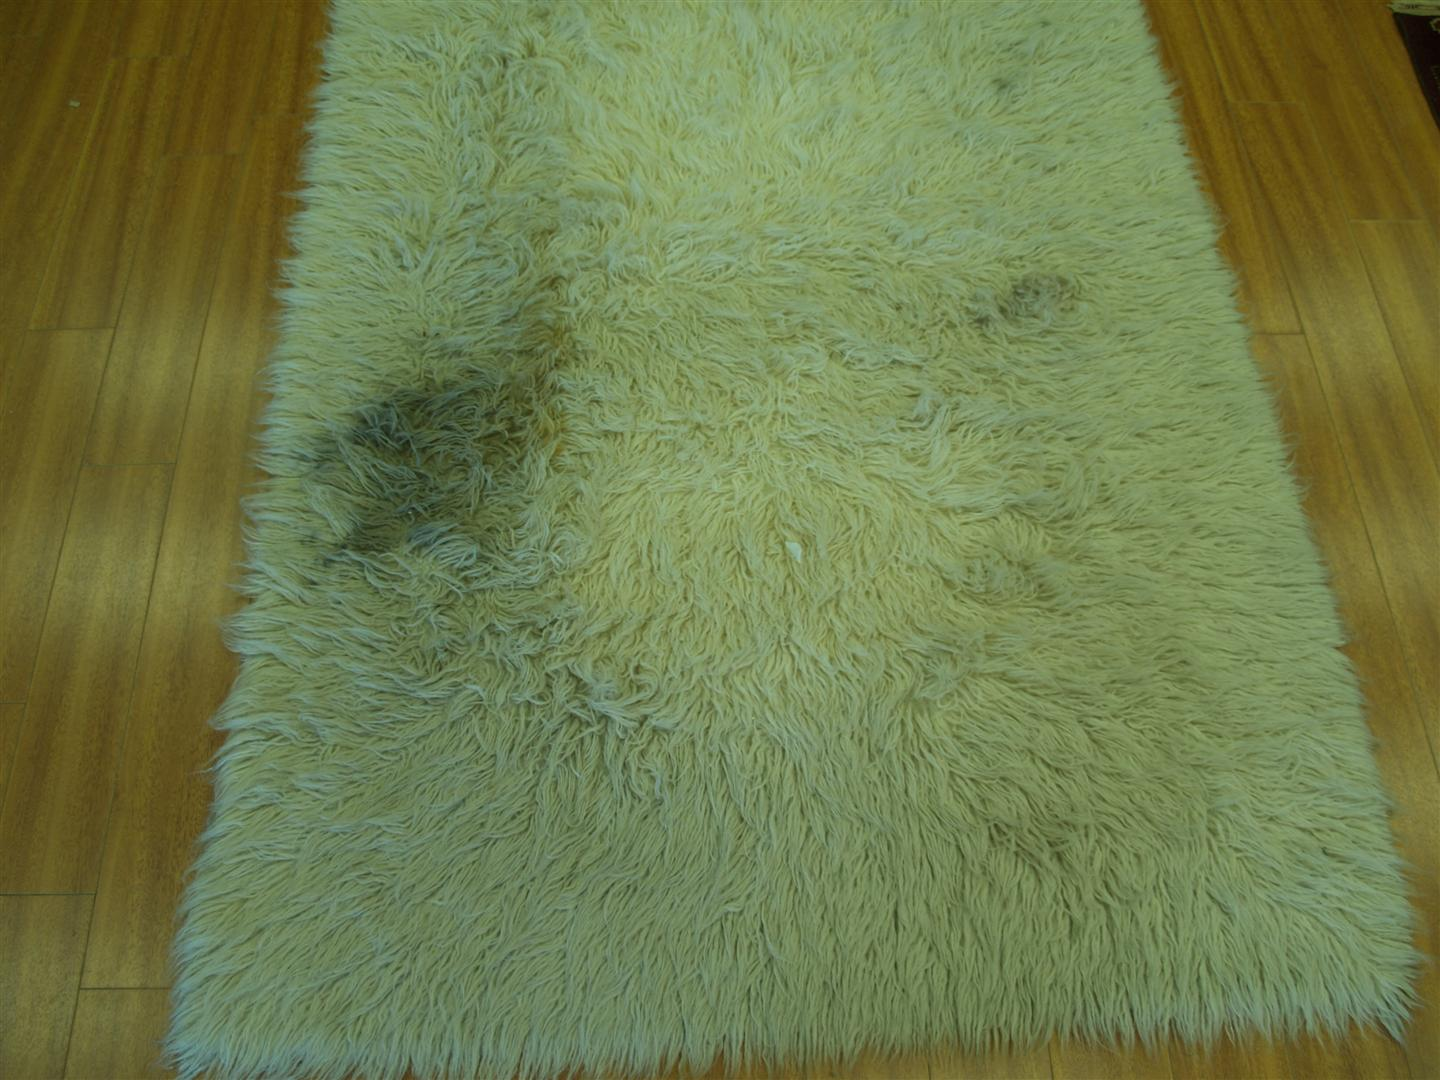 How to clean a flokati rug - So Far During This Year We Have Received Many Rugs From Customers To Be Cleaned Because Of Heavy Dirt Soiling This Flokati Rug Came In A Couple Weeks Ago